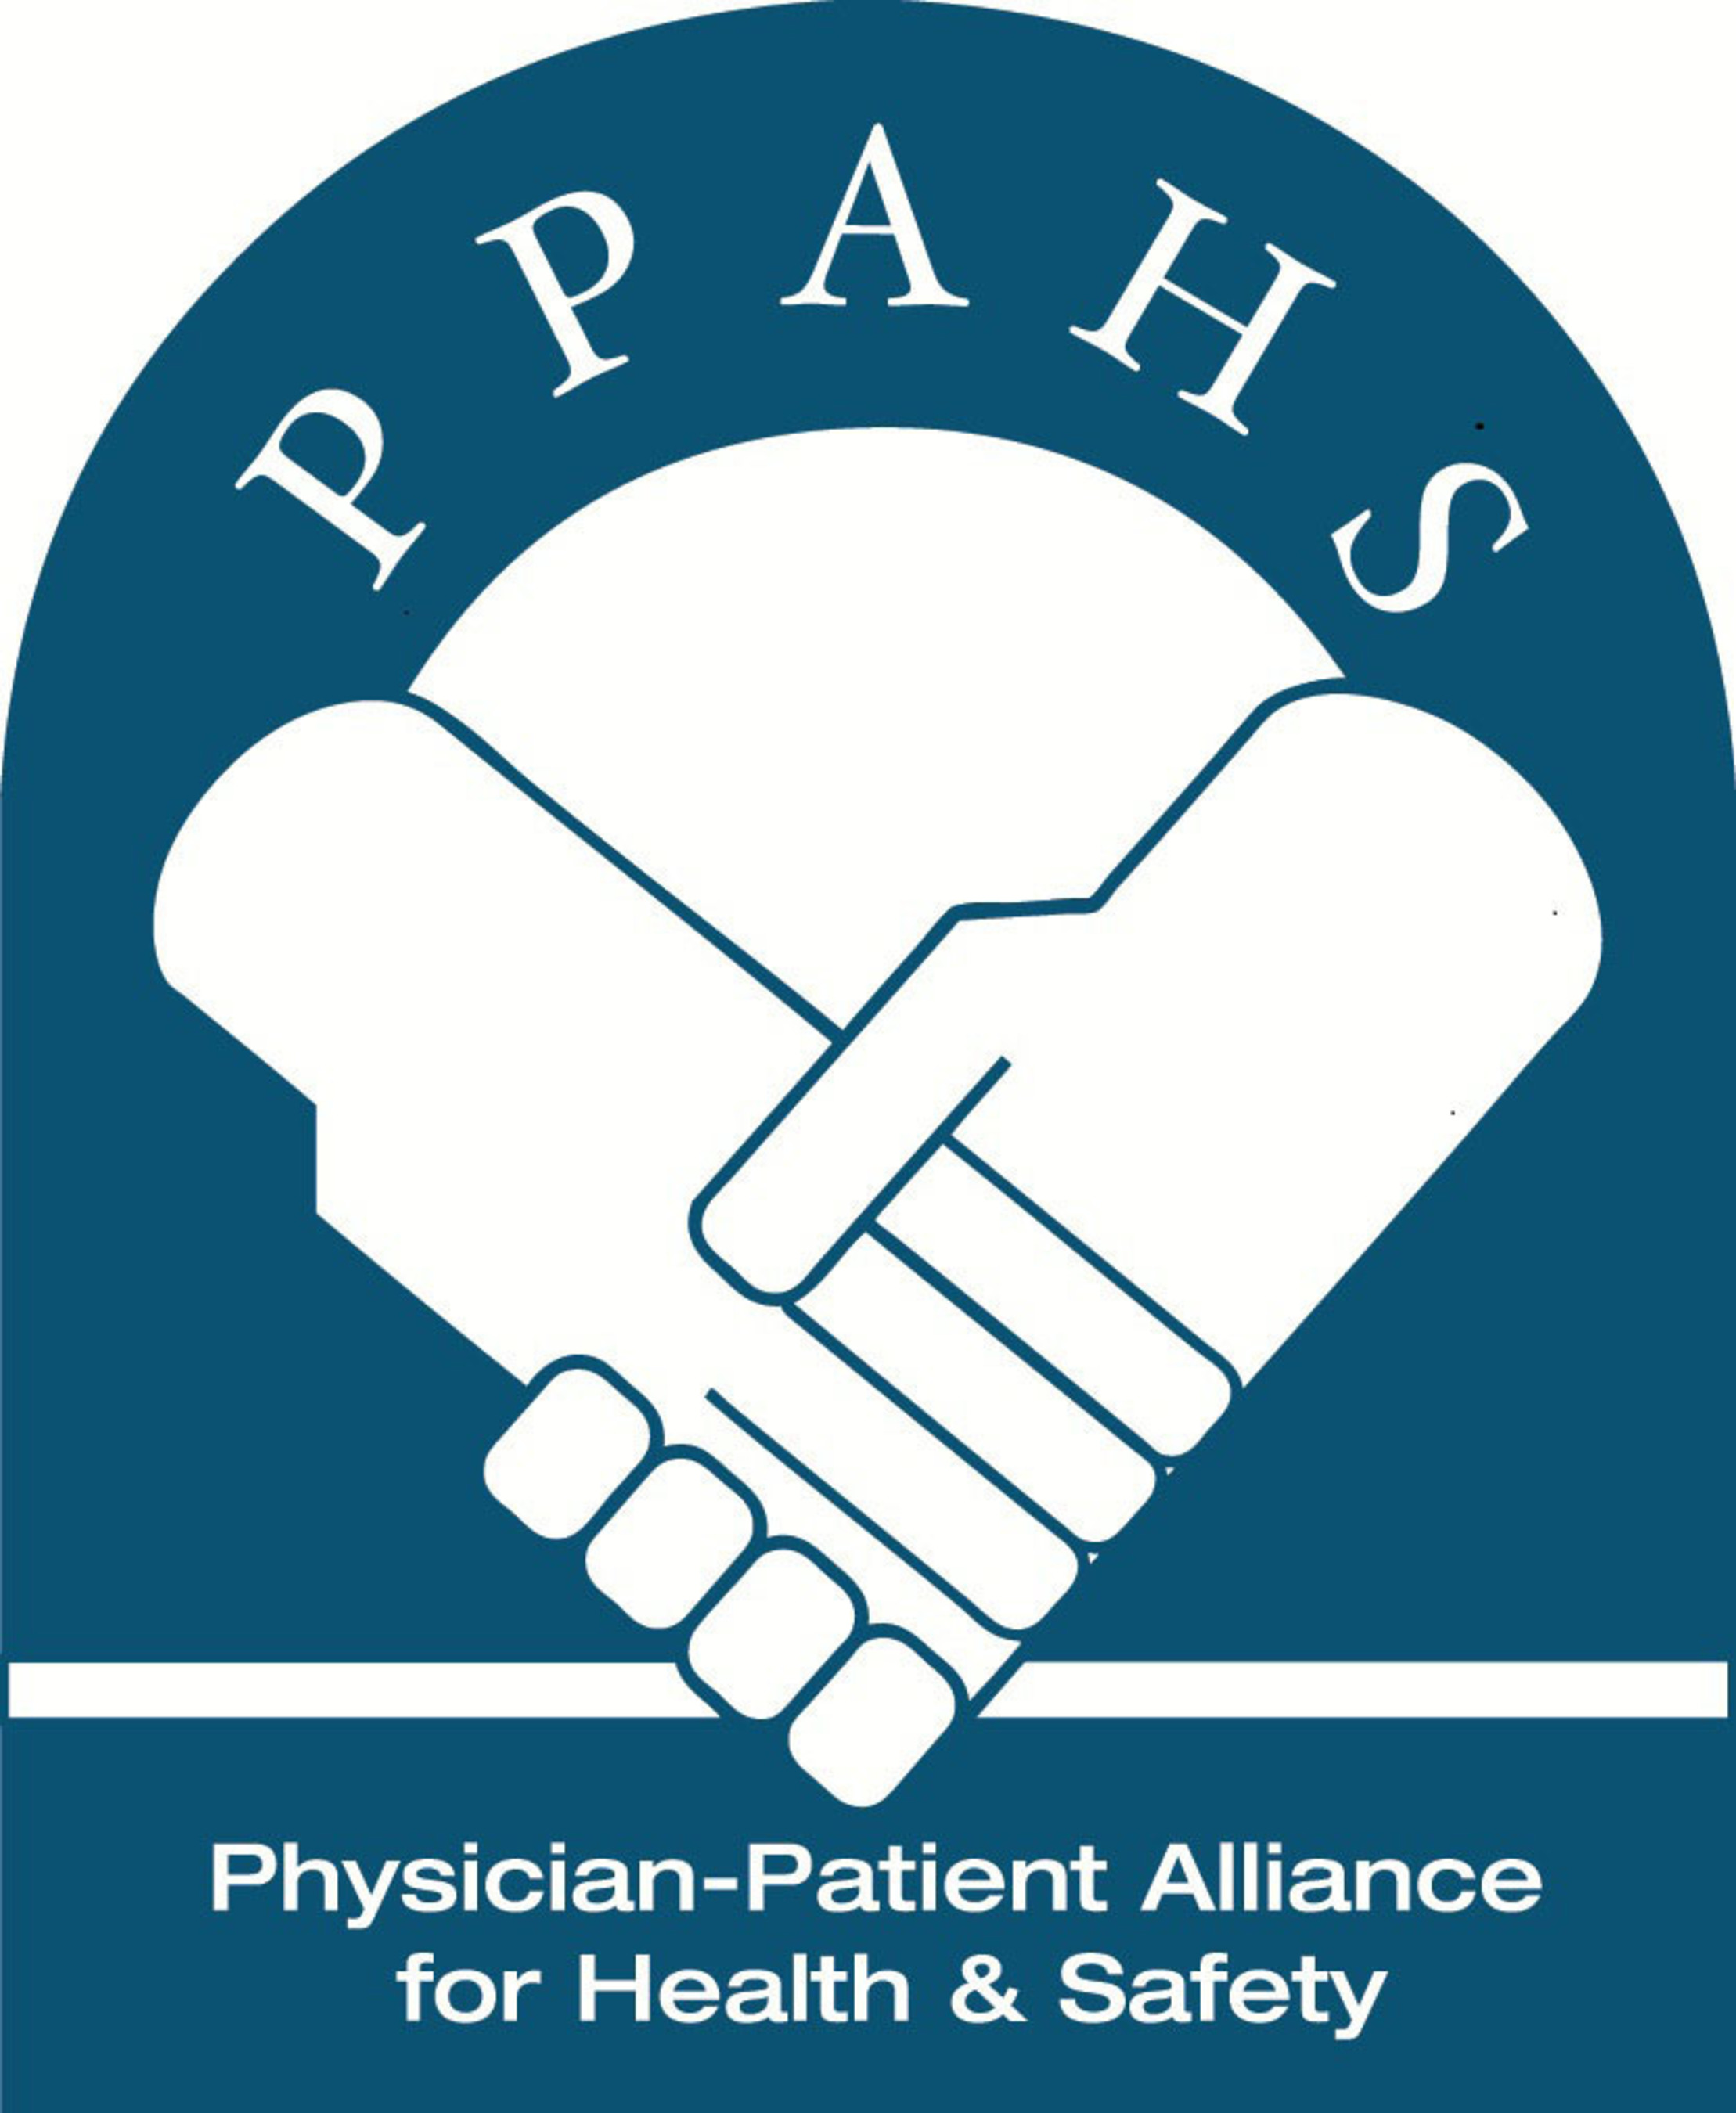 Improving Health & Safety Through Innovation and Awareness. (PRNewsFoto/Physician-Patient Alliance for Health & Safety (PPAHS))